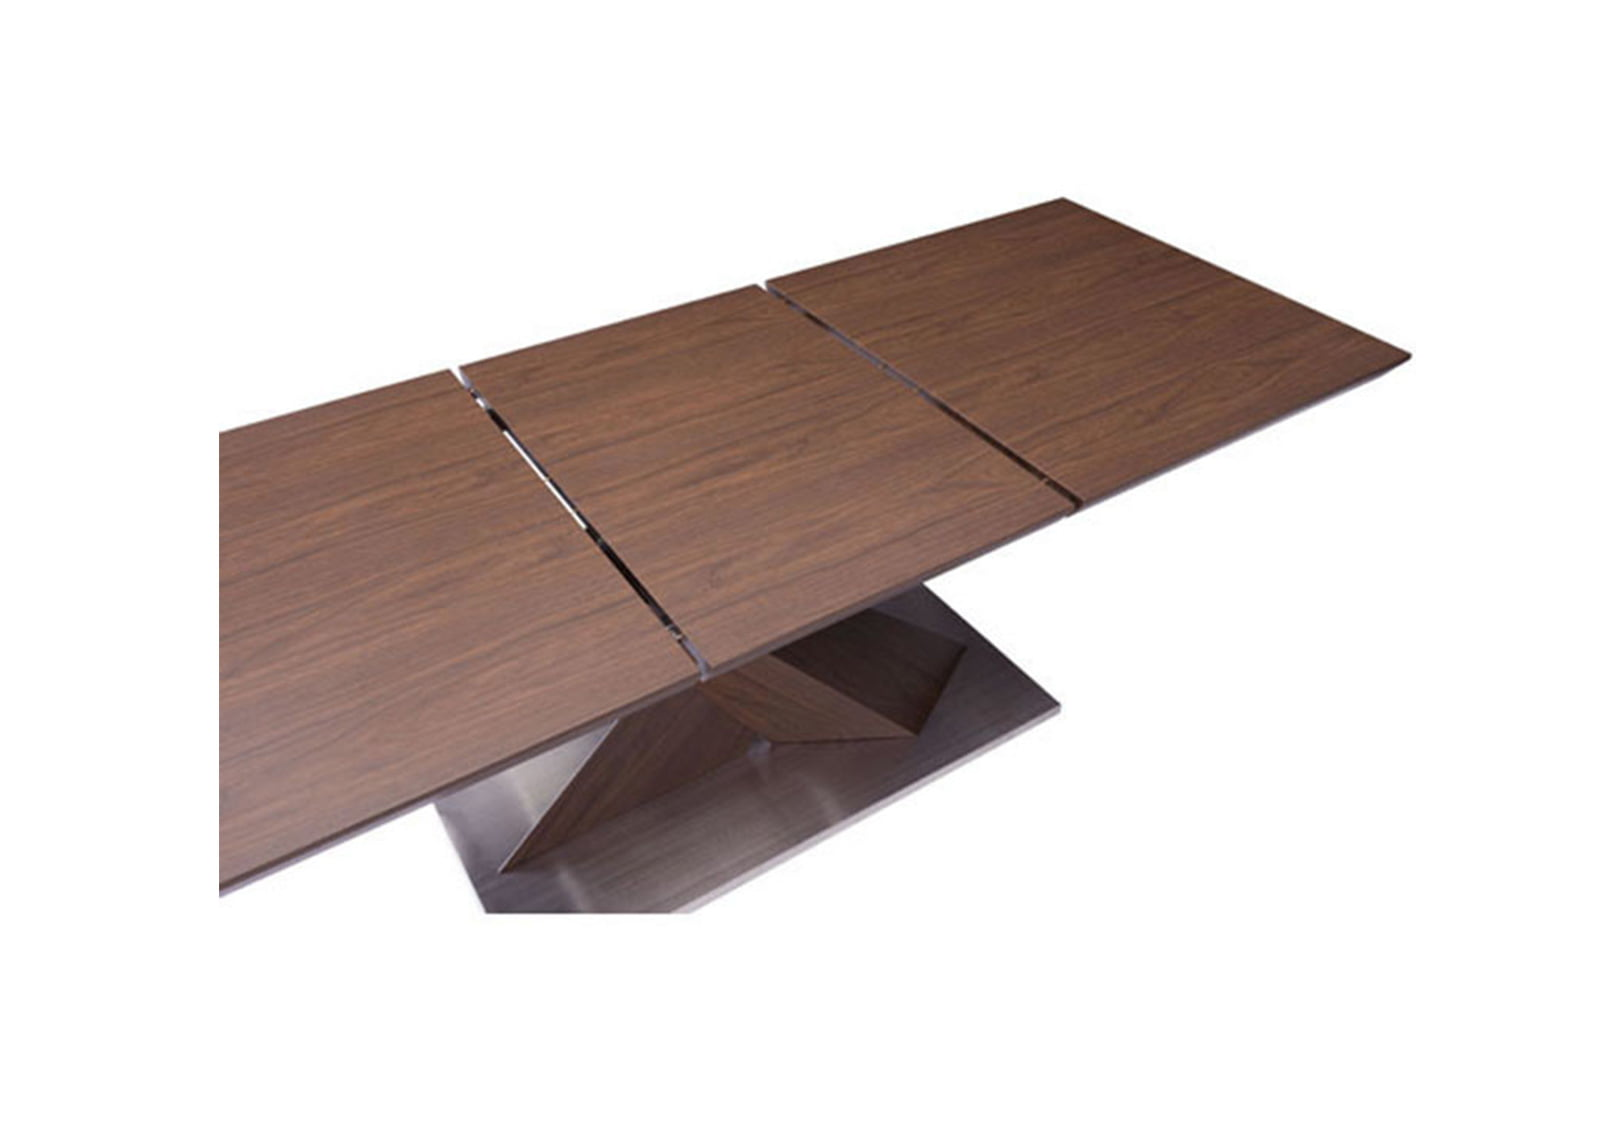 Jaques extension dining table walnut furnishplus for Extension dining table